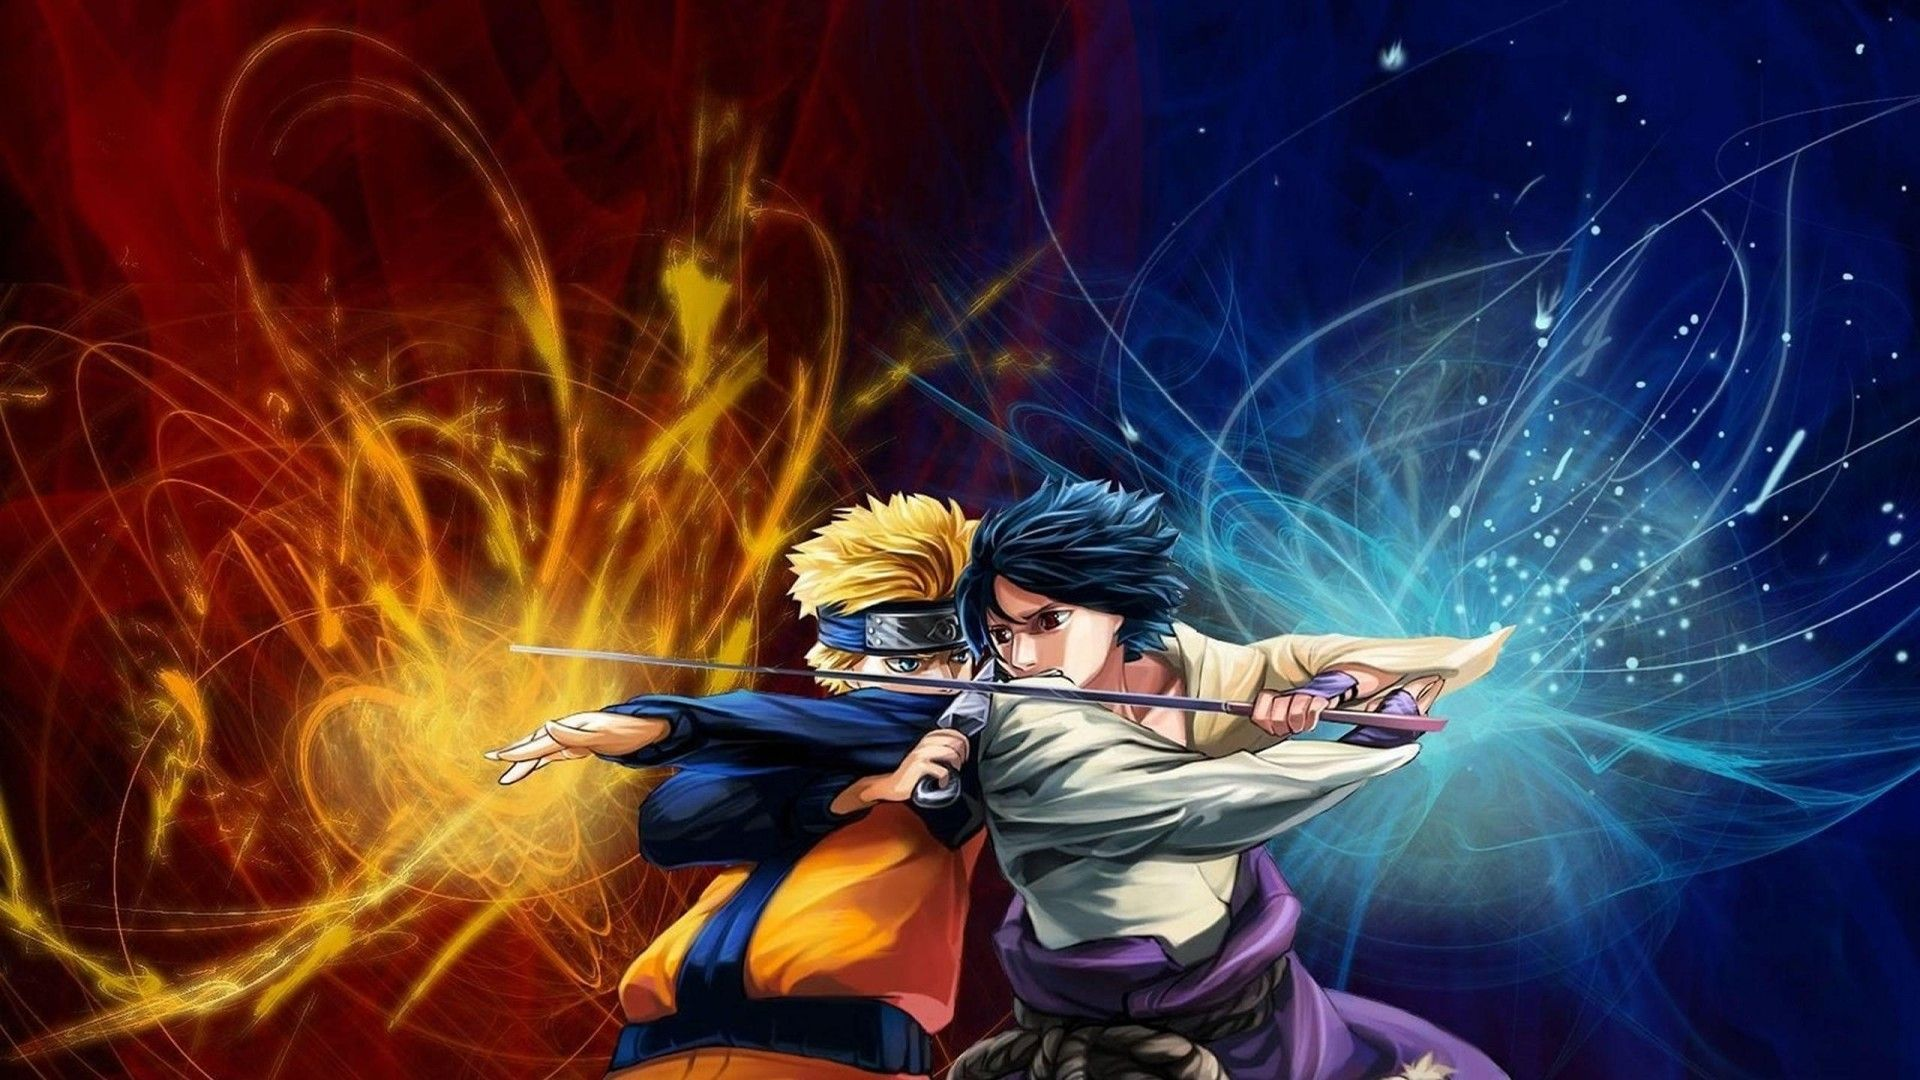 3 Wallpaper Naruto Paling Keren Hd Naruto And Sasuke Naruto Karakter Animasi